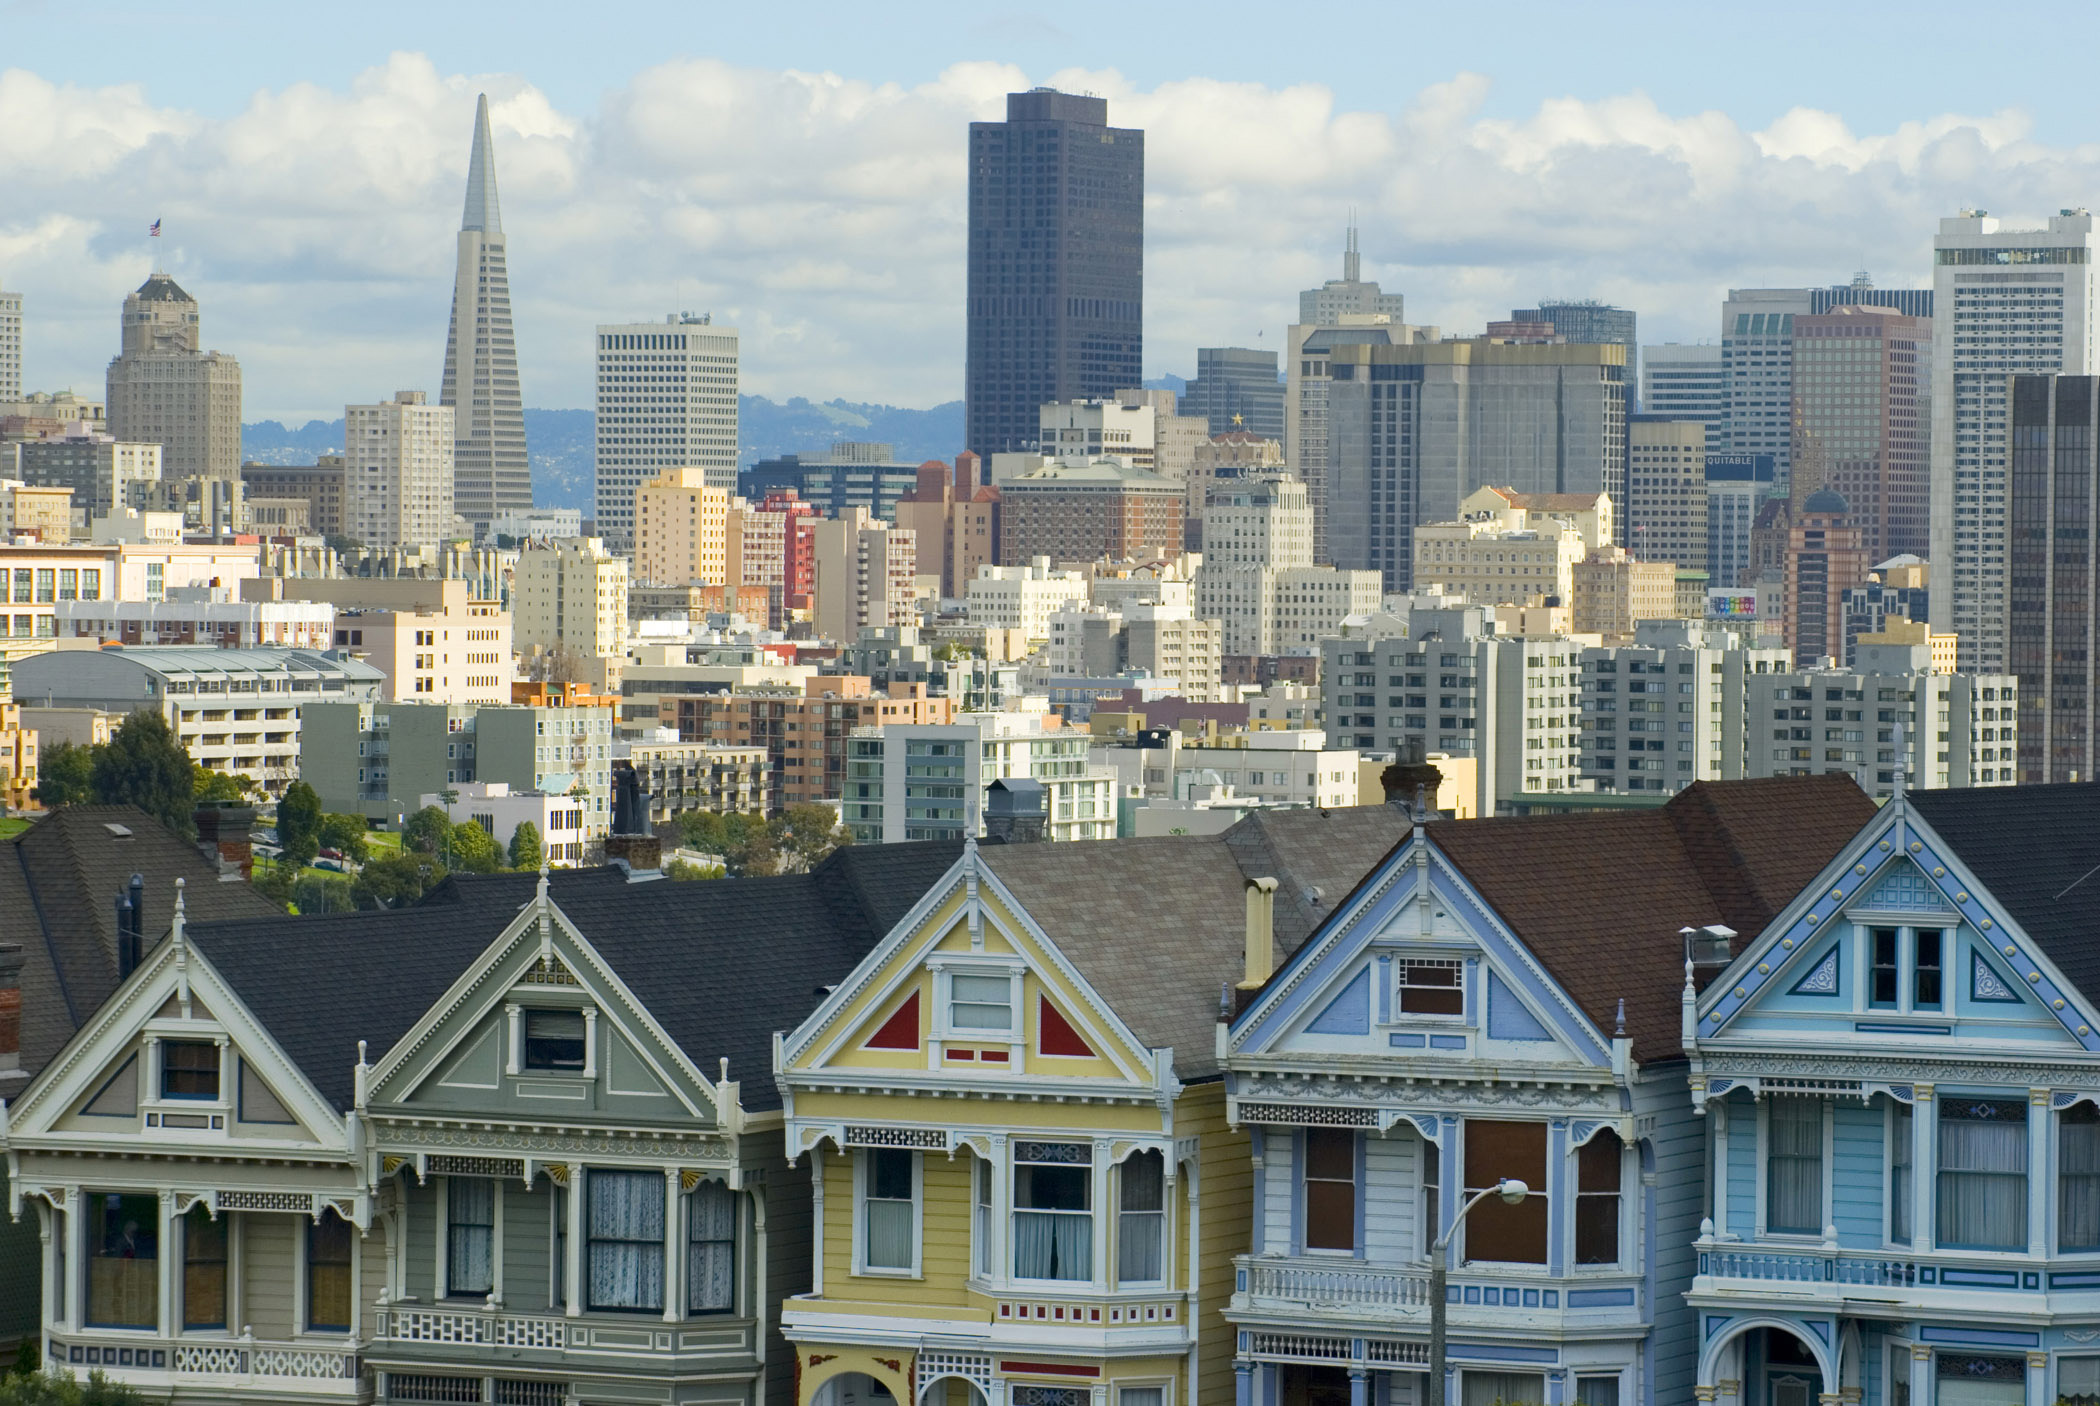 Attractive Architectural Building Structures at Alamo Square San Francisco with Lighter Blue and White Sky Background.